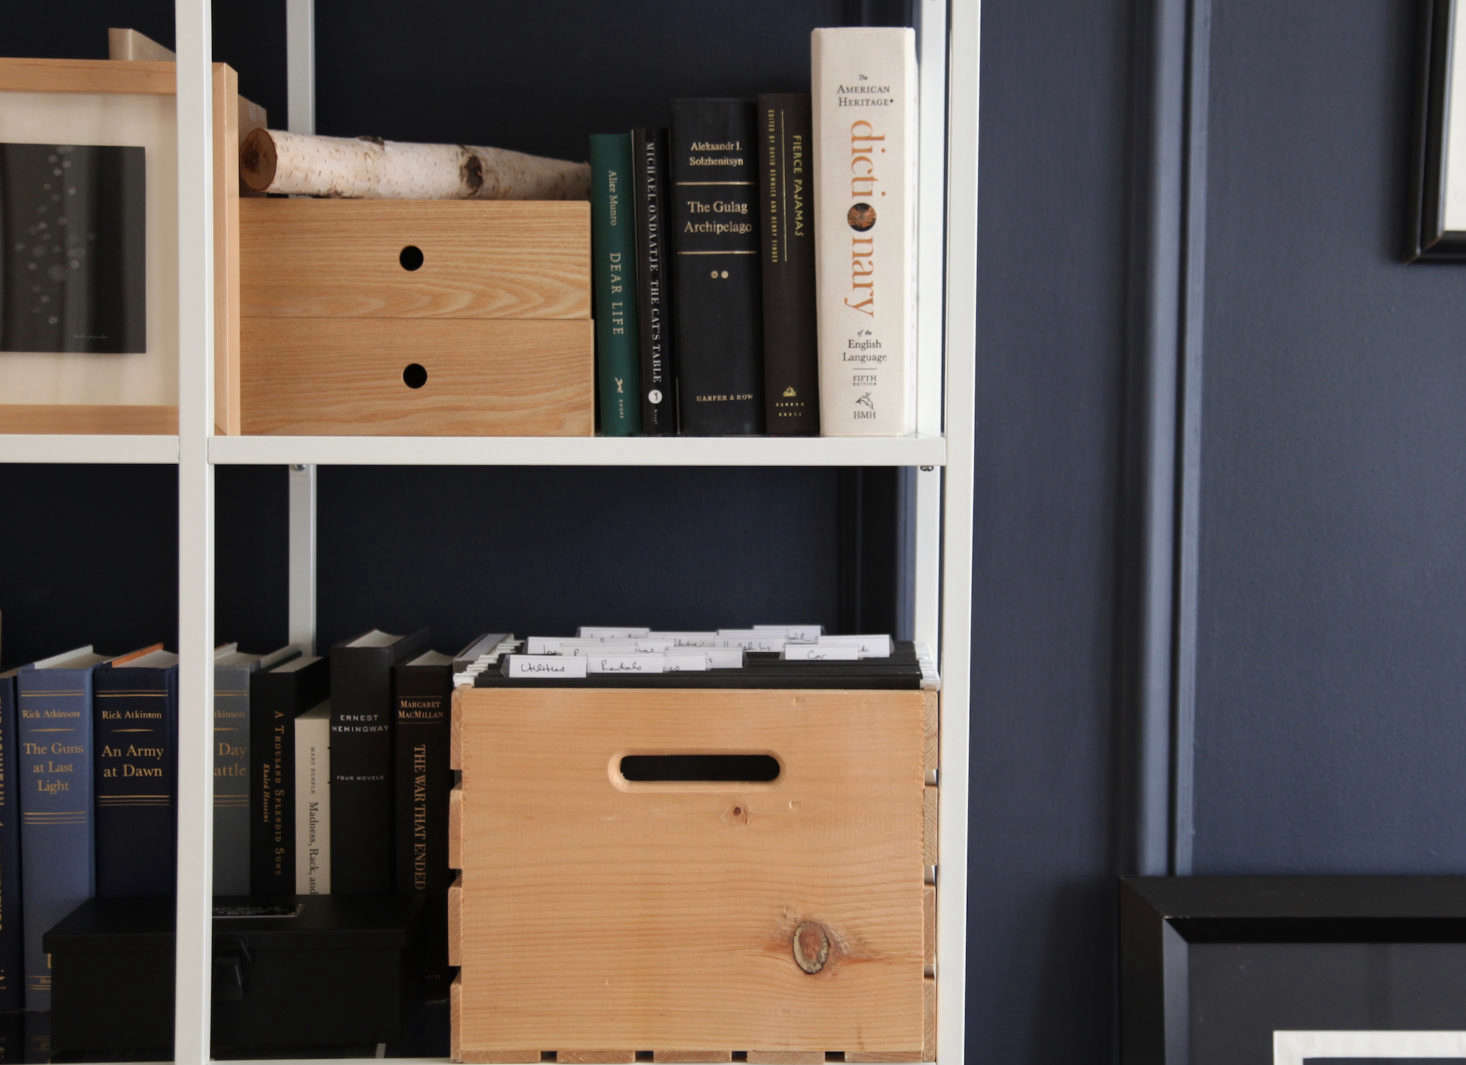 Pine Storage Crate As File Cabinet By Remodelistau0027s The Organized Home